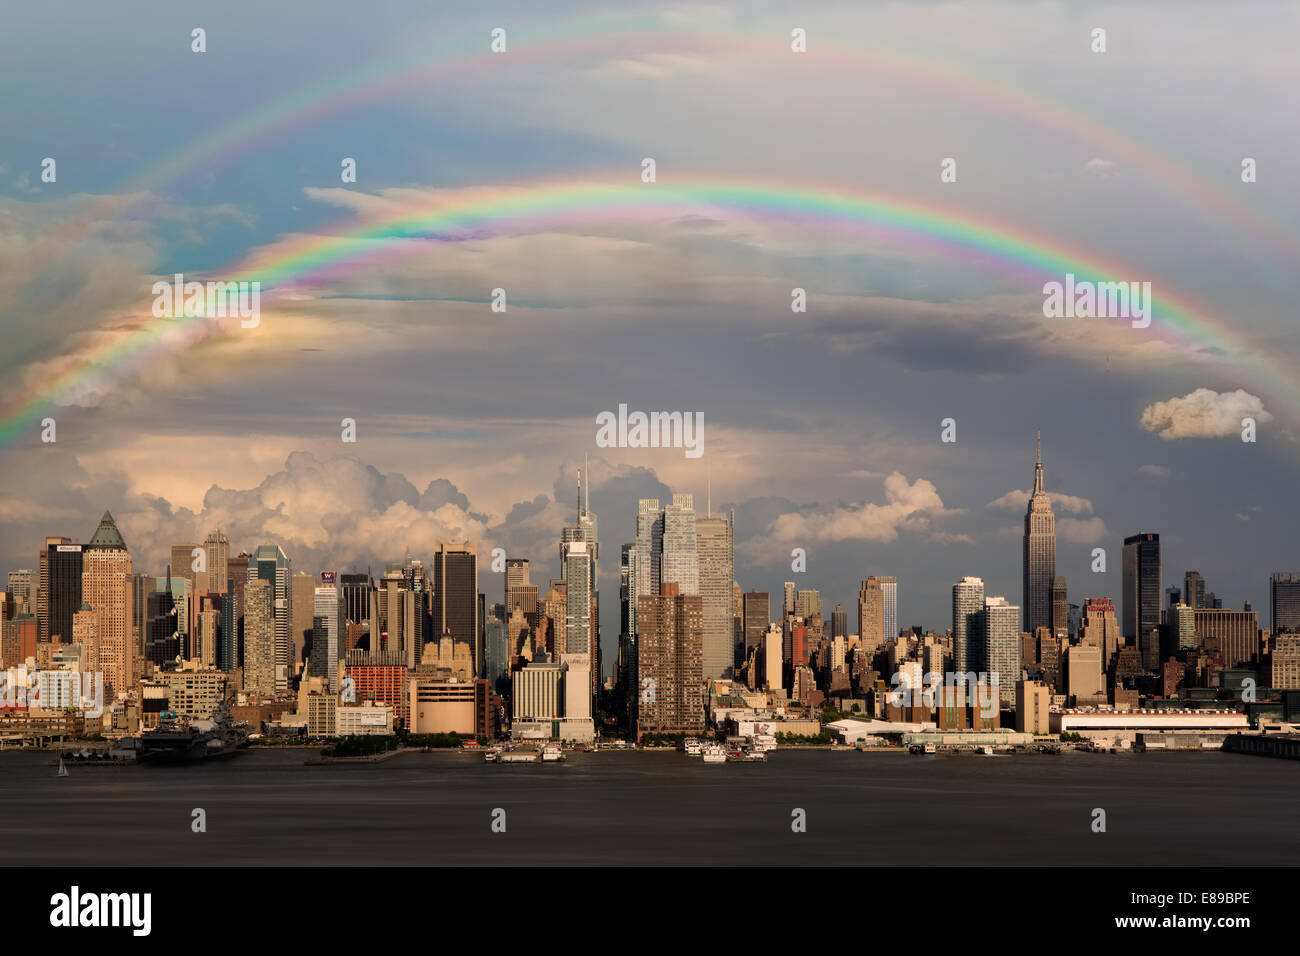 Rainbows over the New York City Skyline after a Thunder Storm. - Stock Image